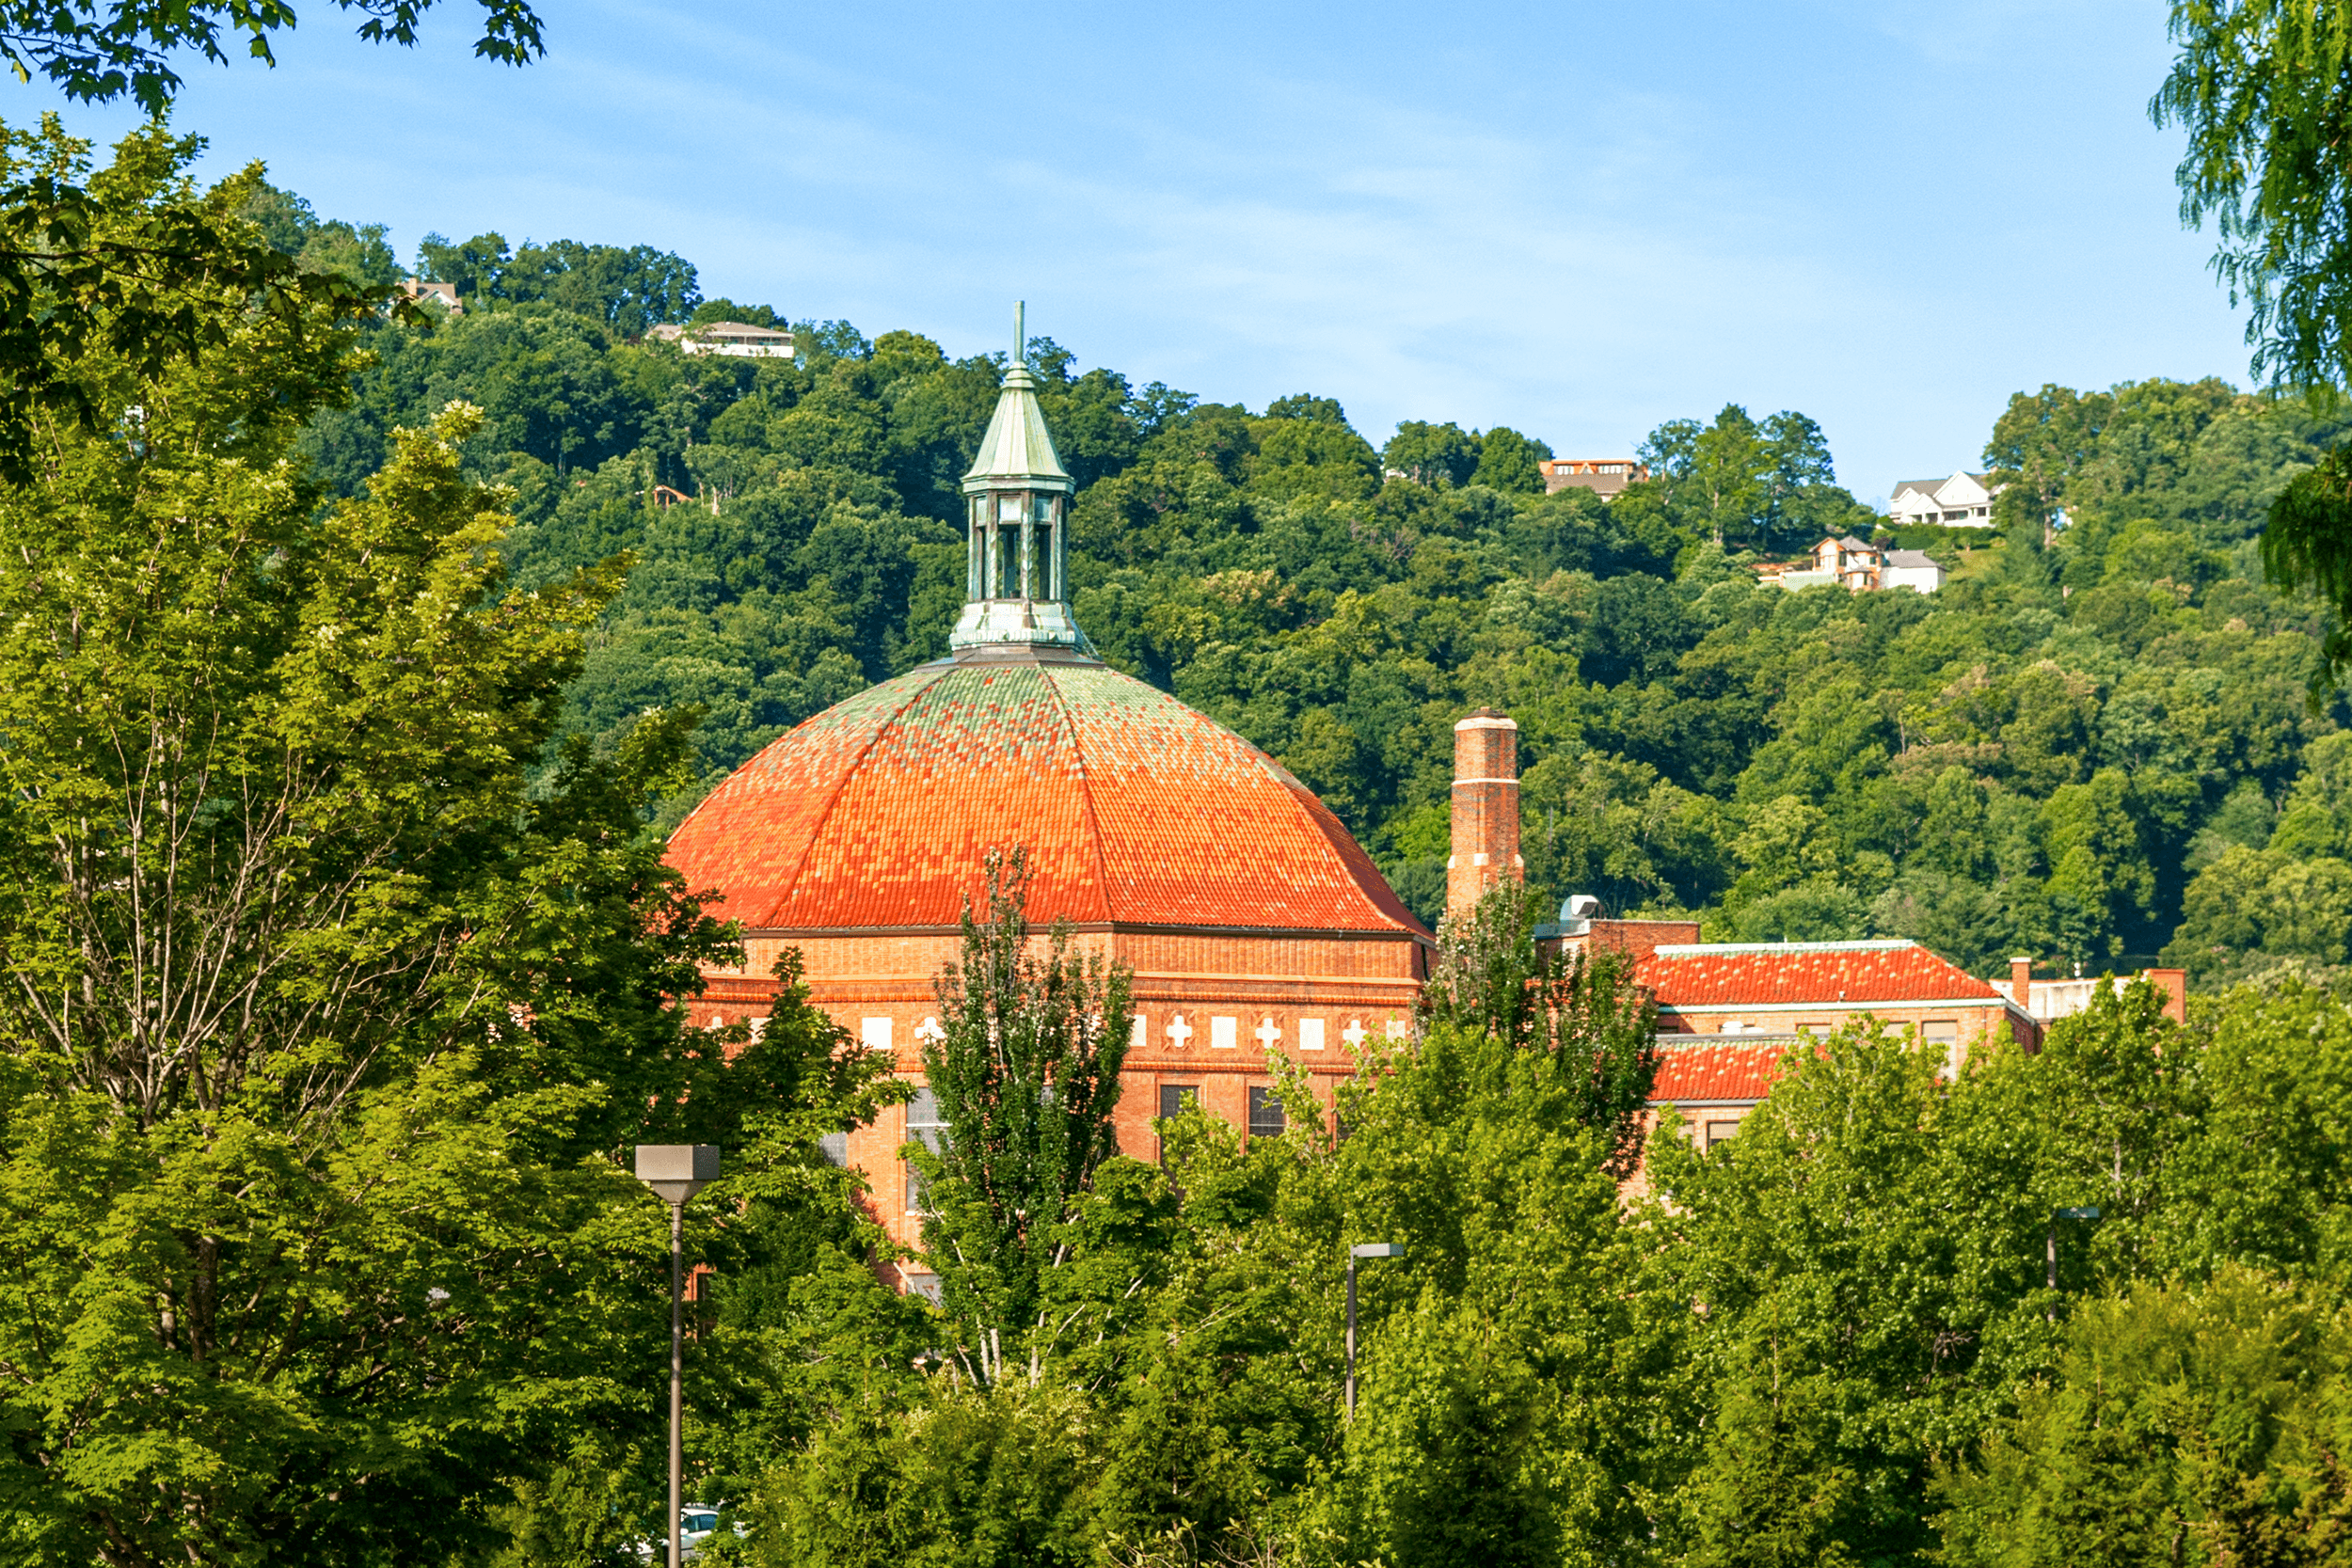 After Douglas Ellington's arrival in Asheville in 1925, the  First Baptist Church  was one of his first commissions. It is said that Douglas Ellington was inspired by the design of the famous cathedral and dome of  Santa Maria del Fiore  in Florence, Italy.